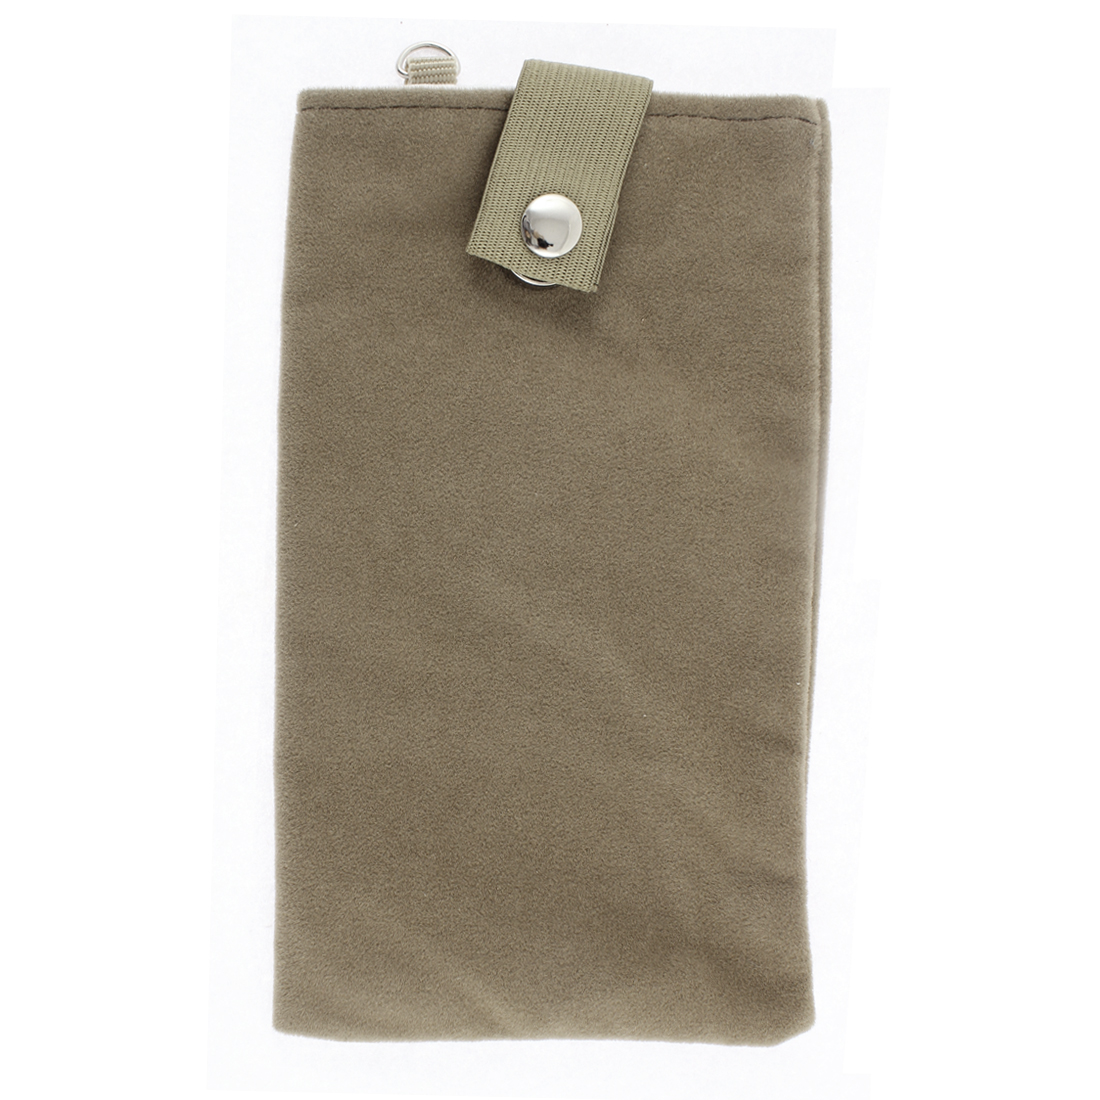 Velvet Magnetic Clasp Button Cell Phone Pouch Sleeve Bag Light Brown 18x11cm